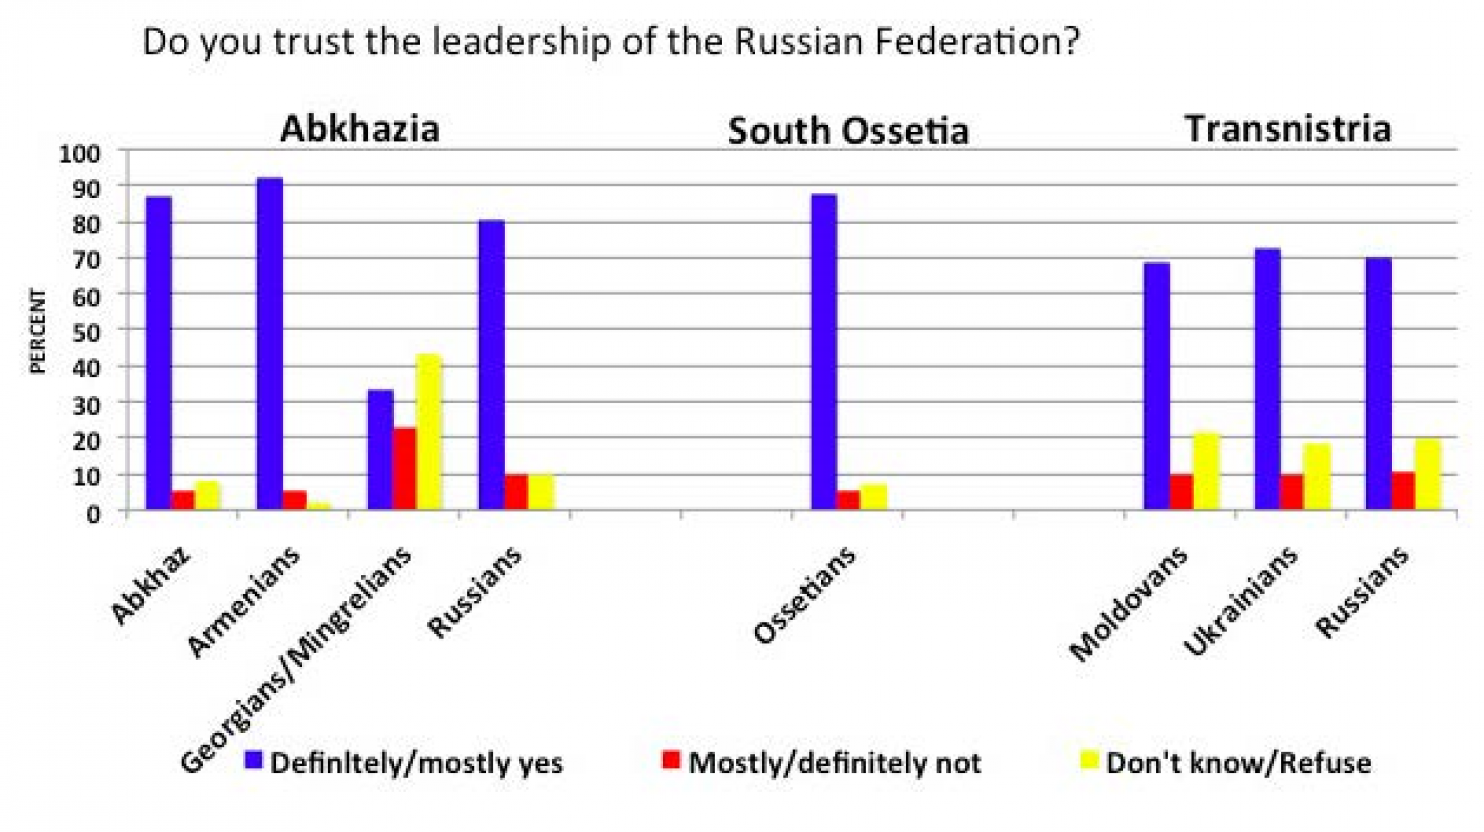 72% of Ukrainians and 70% of Russians trusted Russian leadership